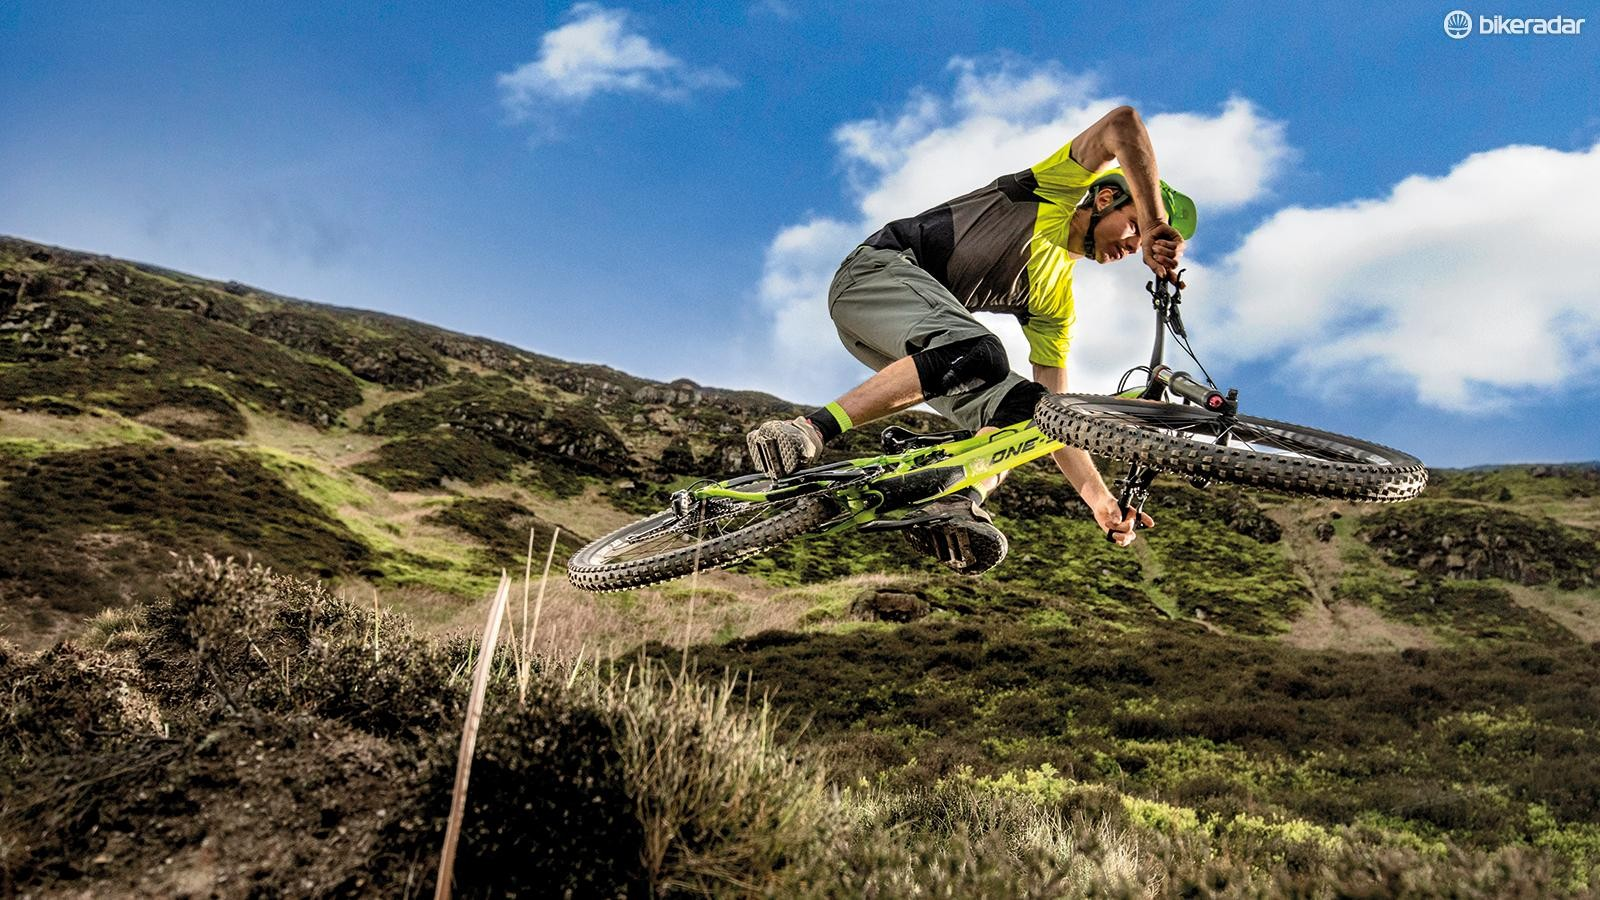 The Merida performs well on the rowdiest trails